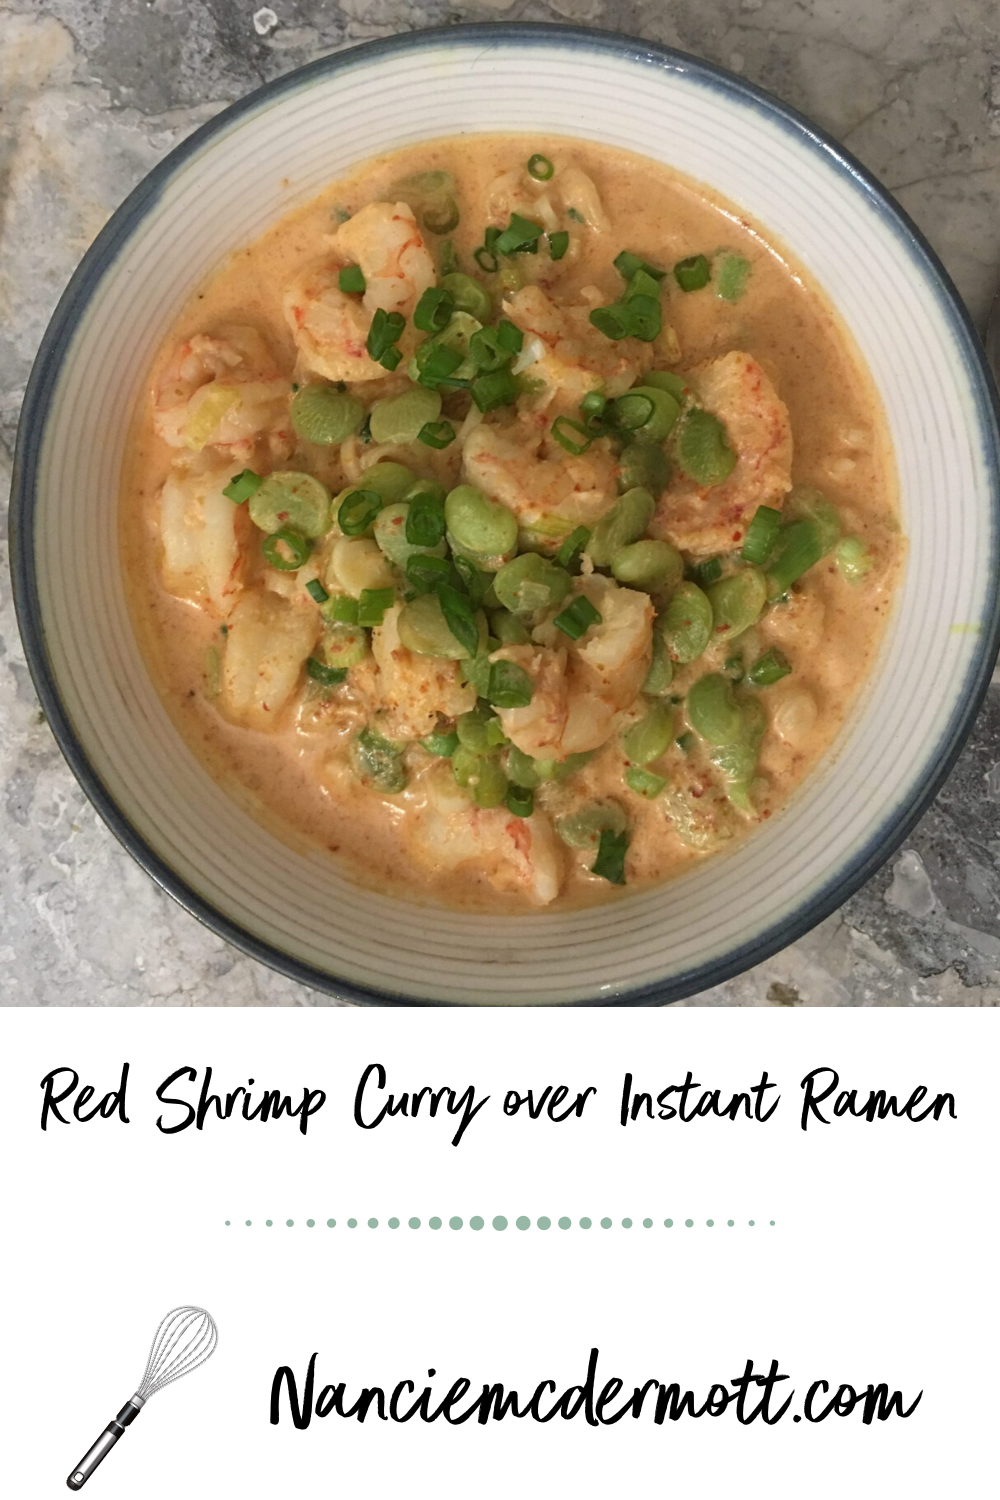 Red Shrimp Curry over Instant Ramen